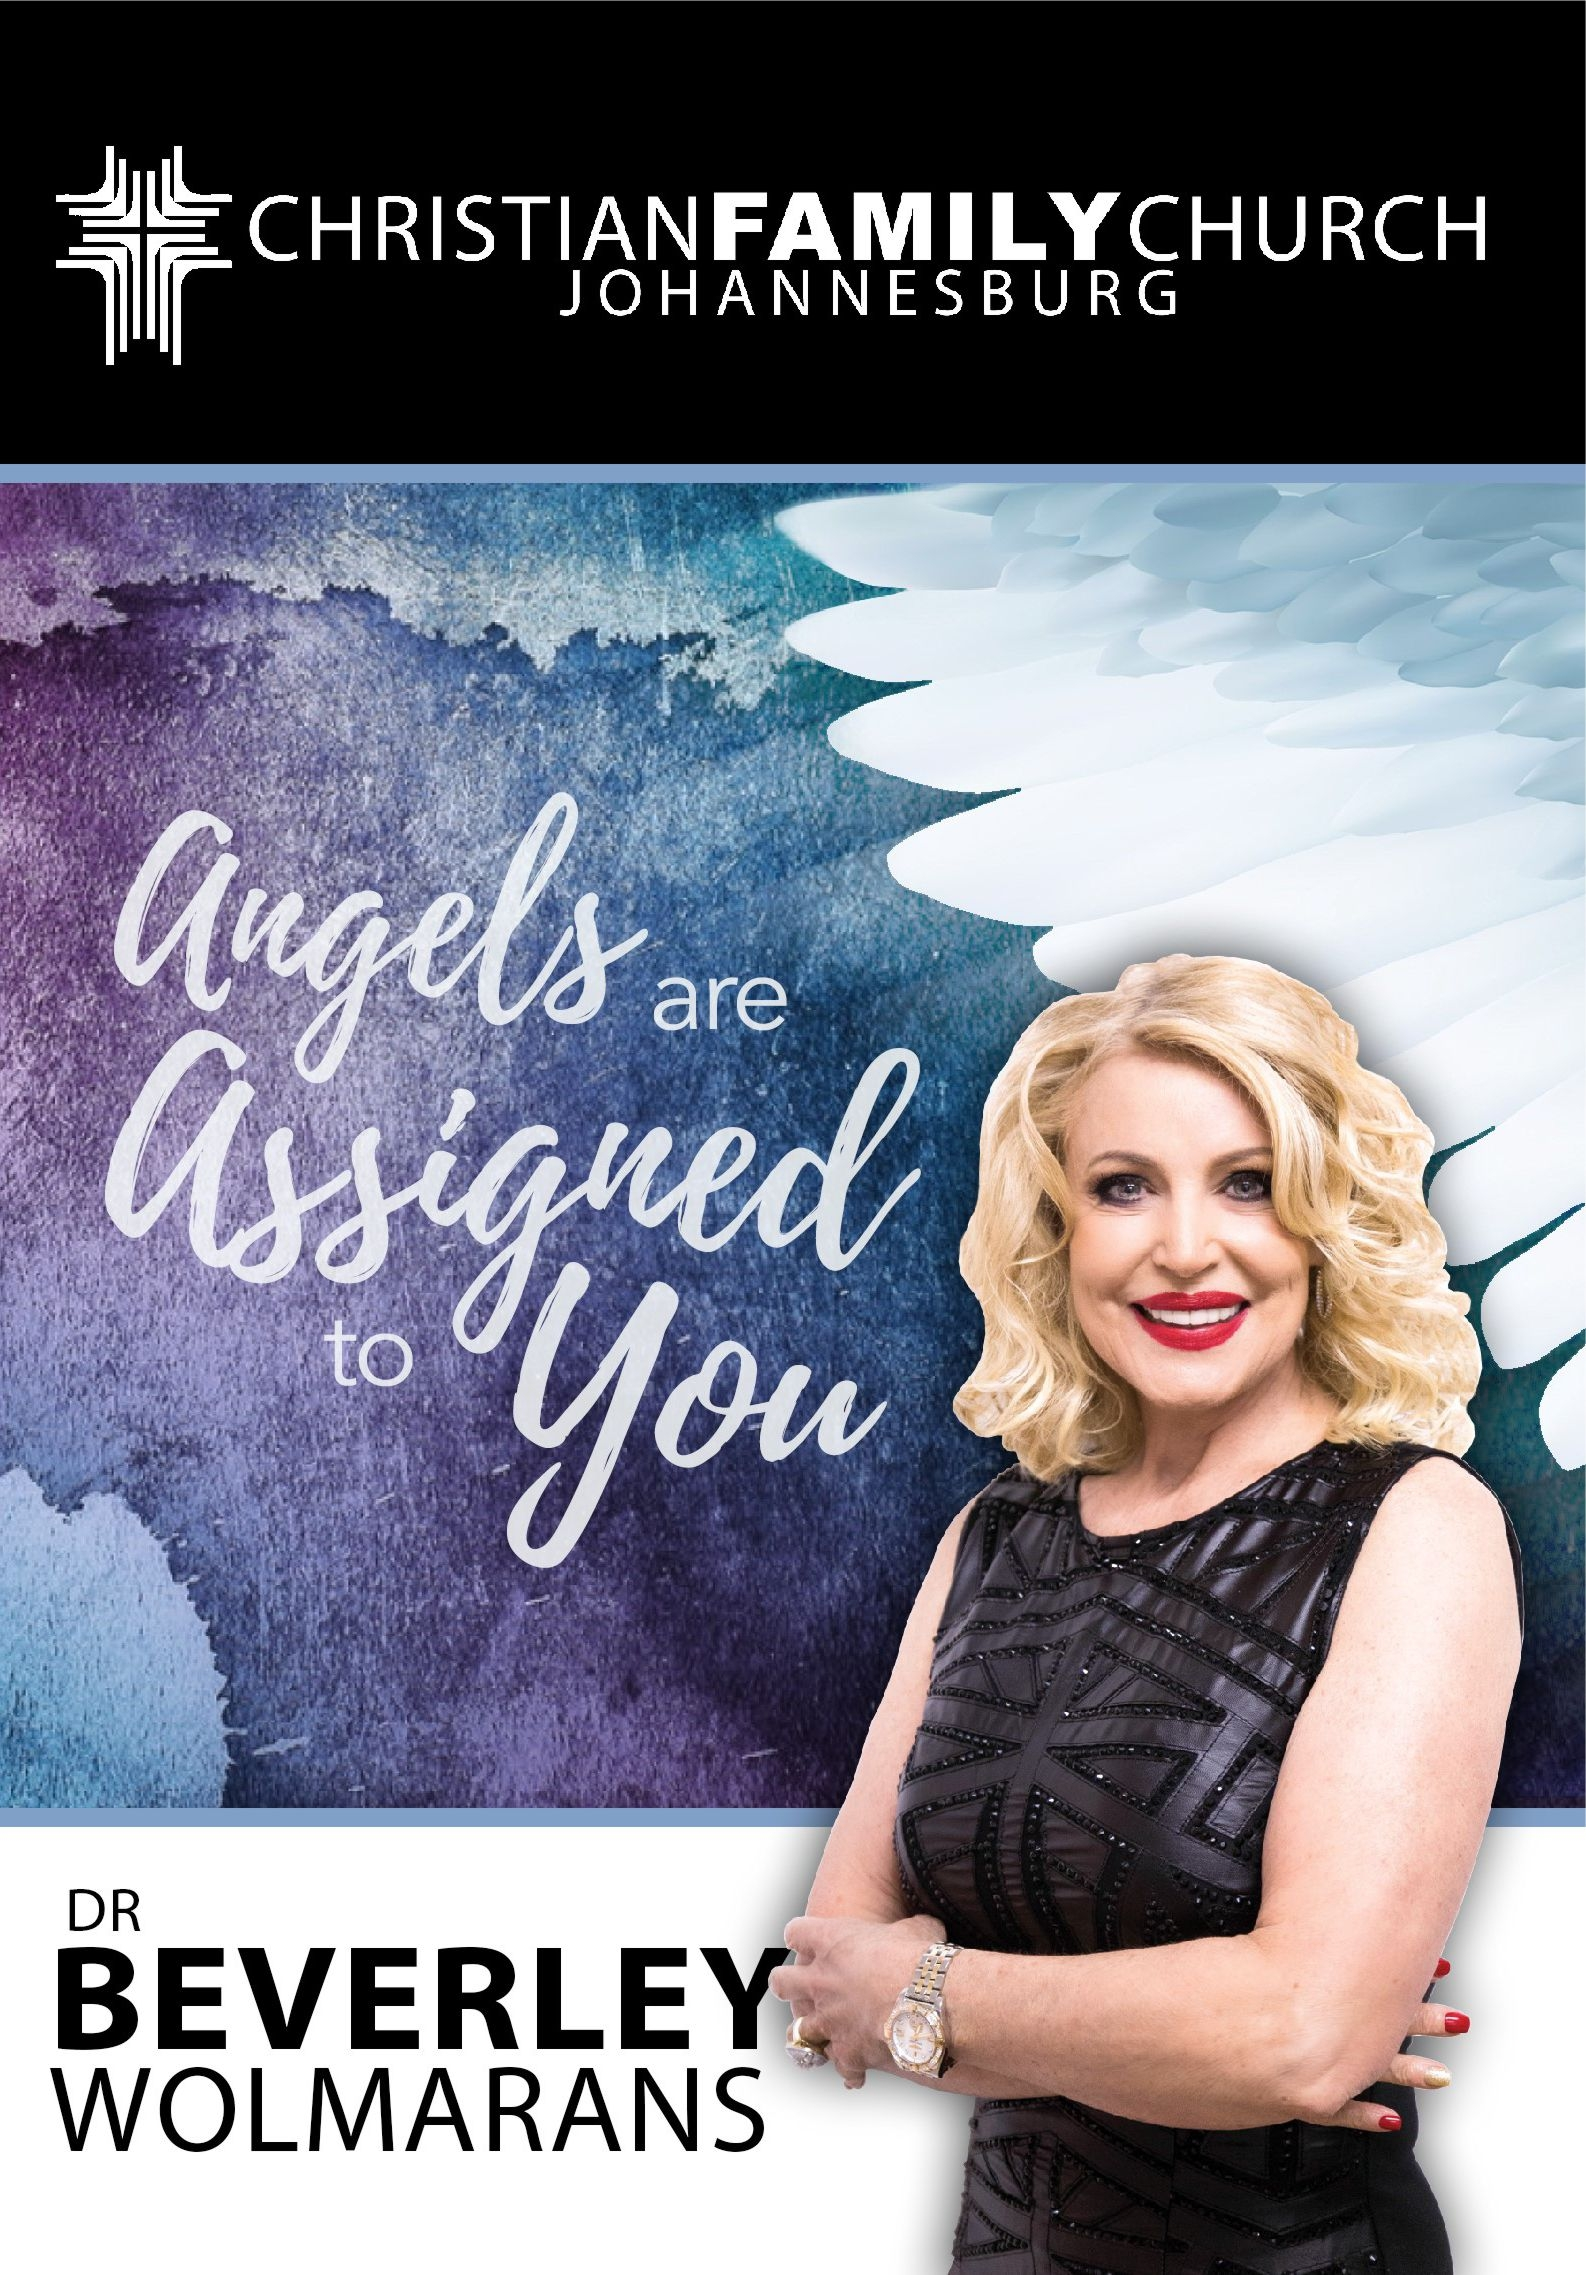 DR-BEVERLEY-WOLMARANS-ANGELS-ARE-ASSIGNED-TO-YOU-MP3